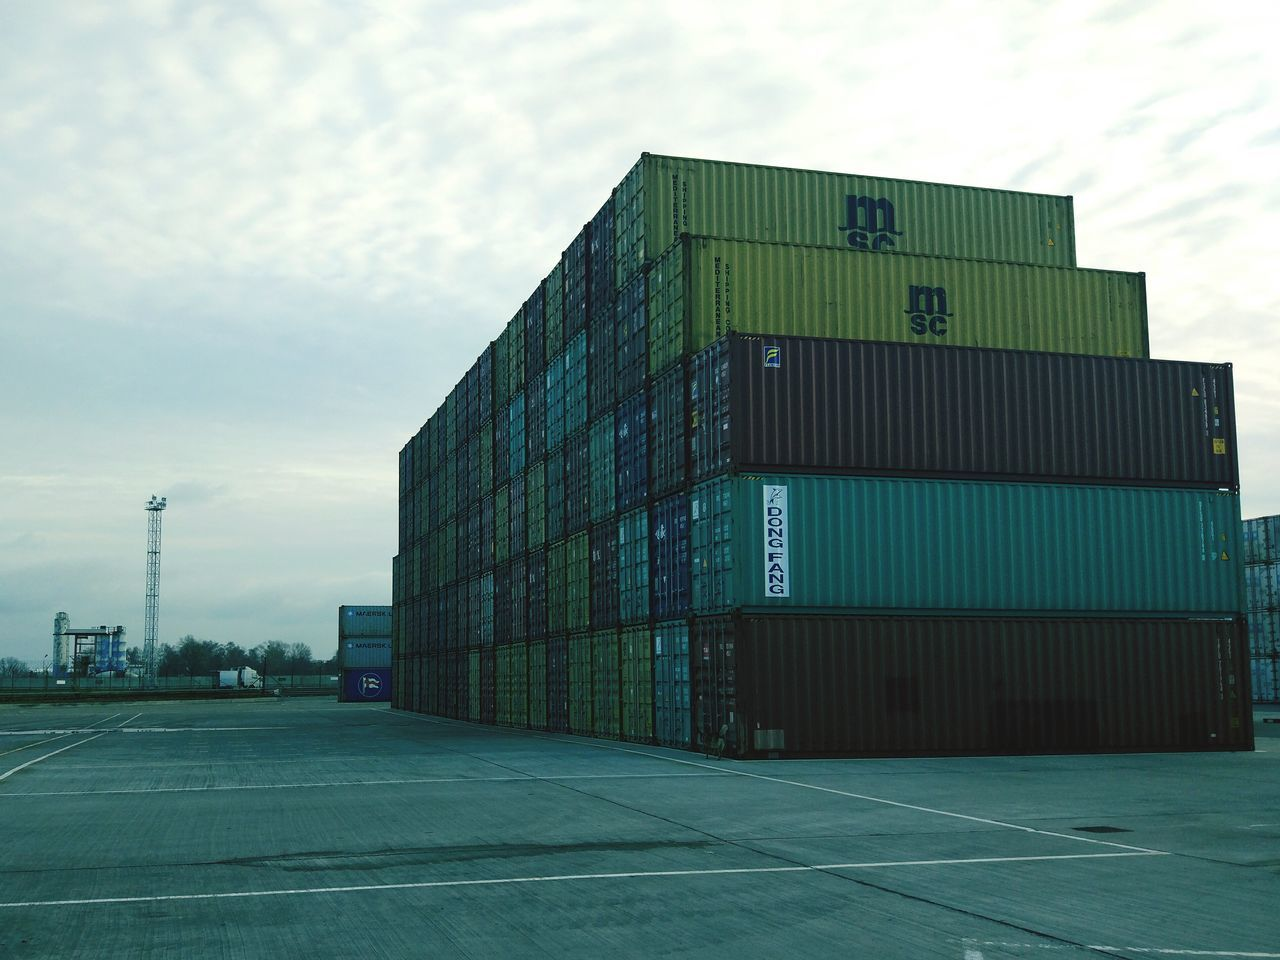 Port Cargo Container Industry No People Day Sky Outdoors First Eyeem Photo